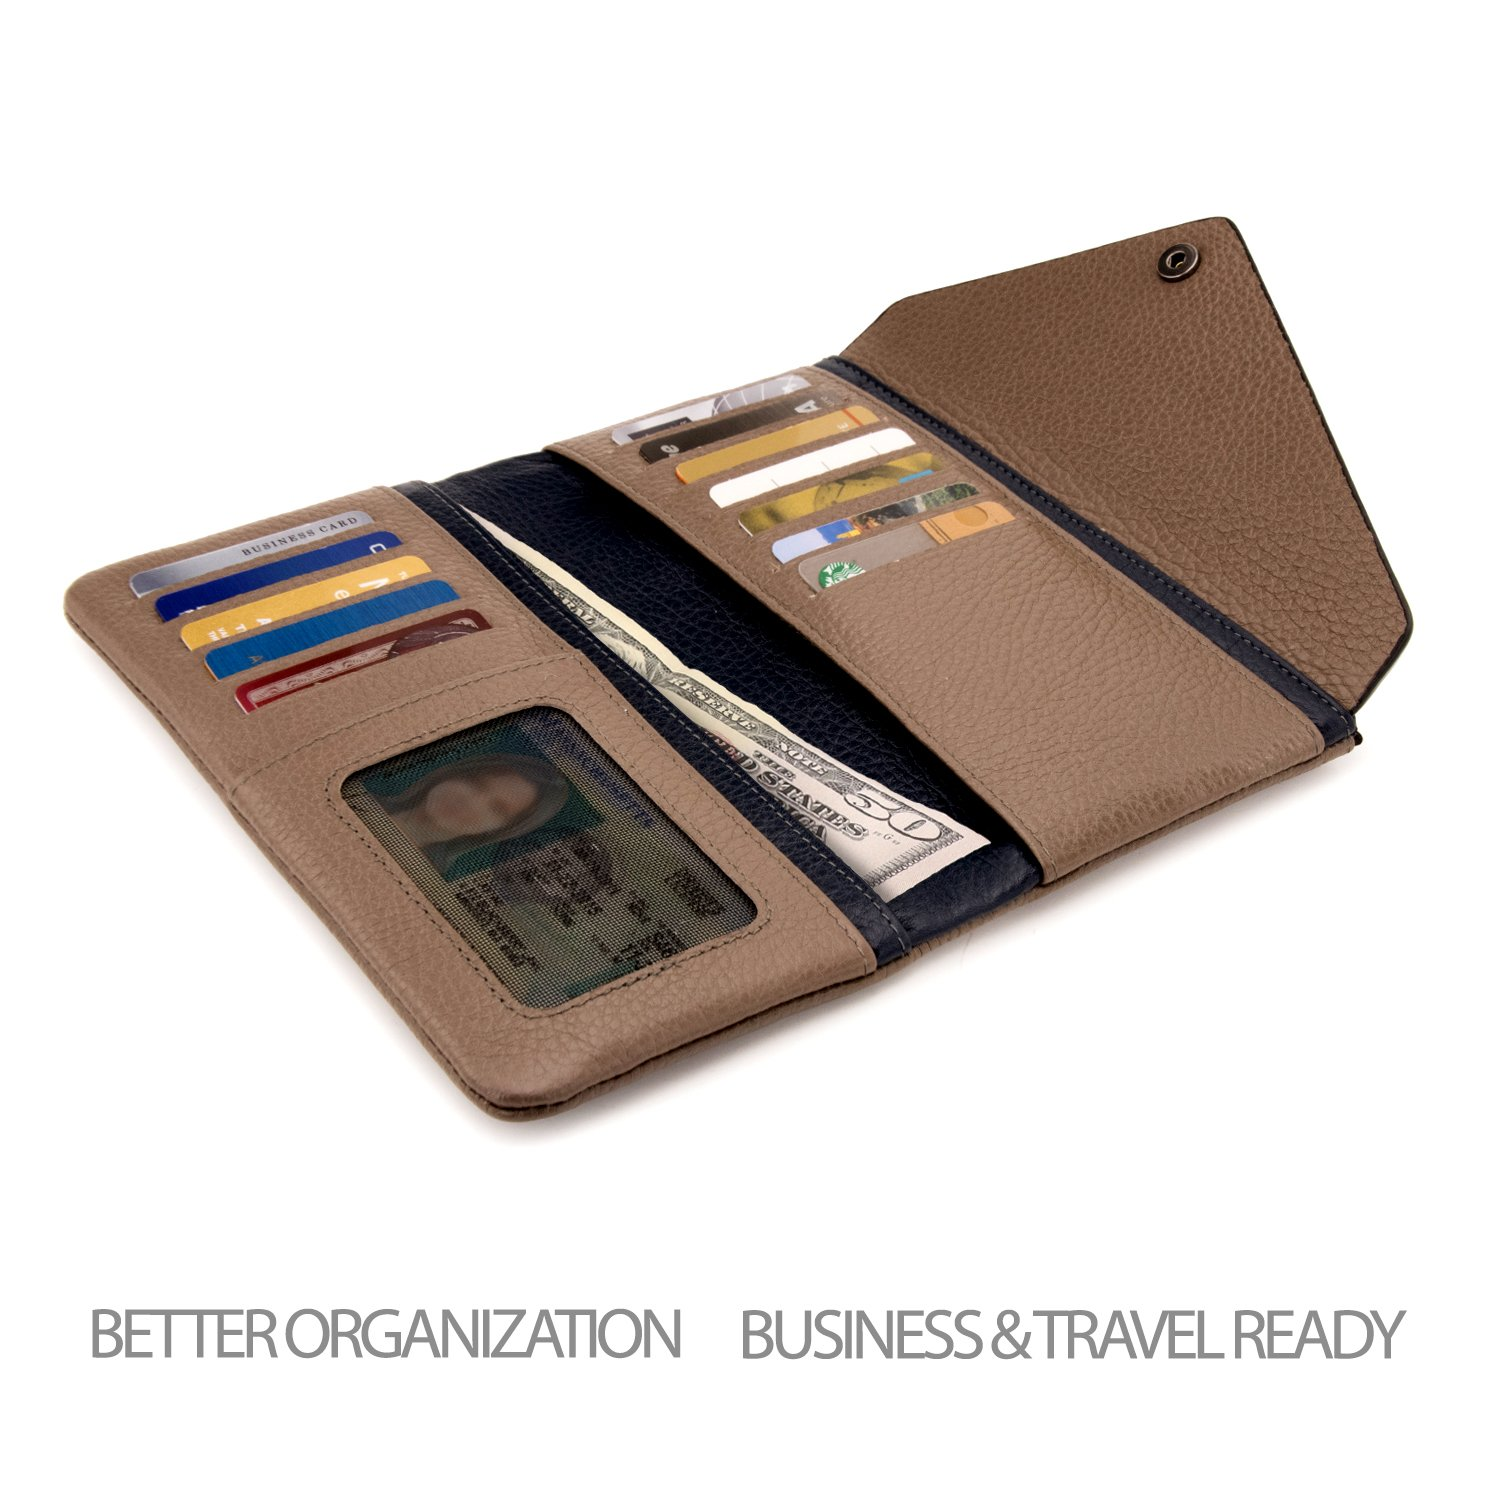 OTTO Genuine Leather Envelope Wallet with Phone Compatible Slots - RFID Blocking - Unisex (Navy Blue & Mink) by OTTO Leather (Image #4)